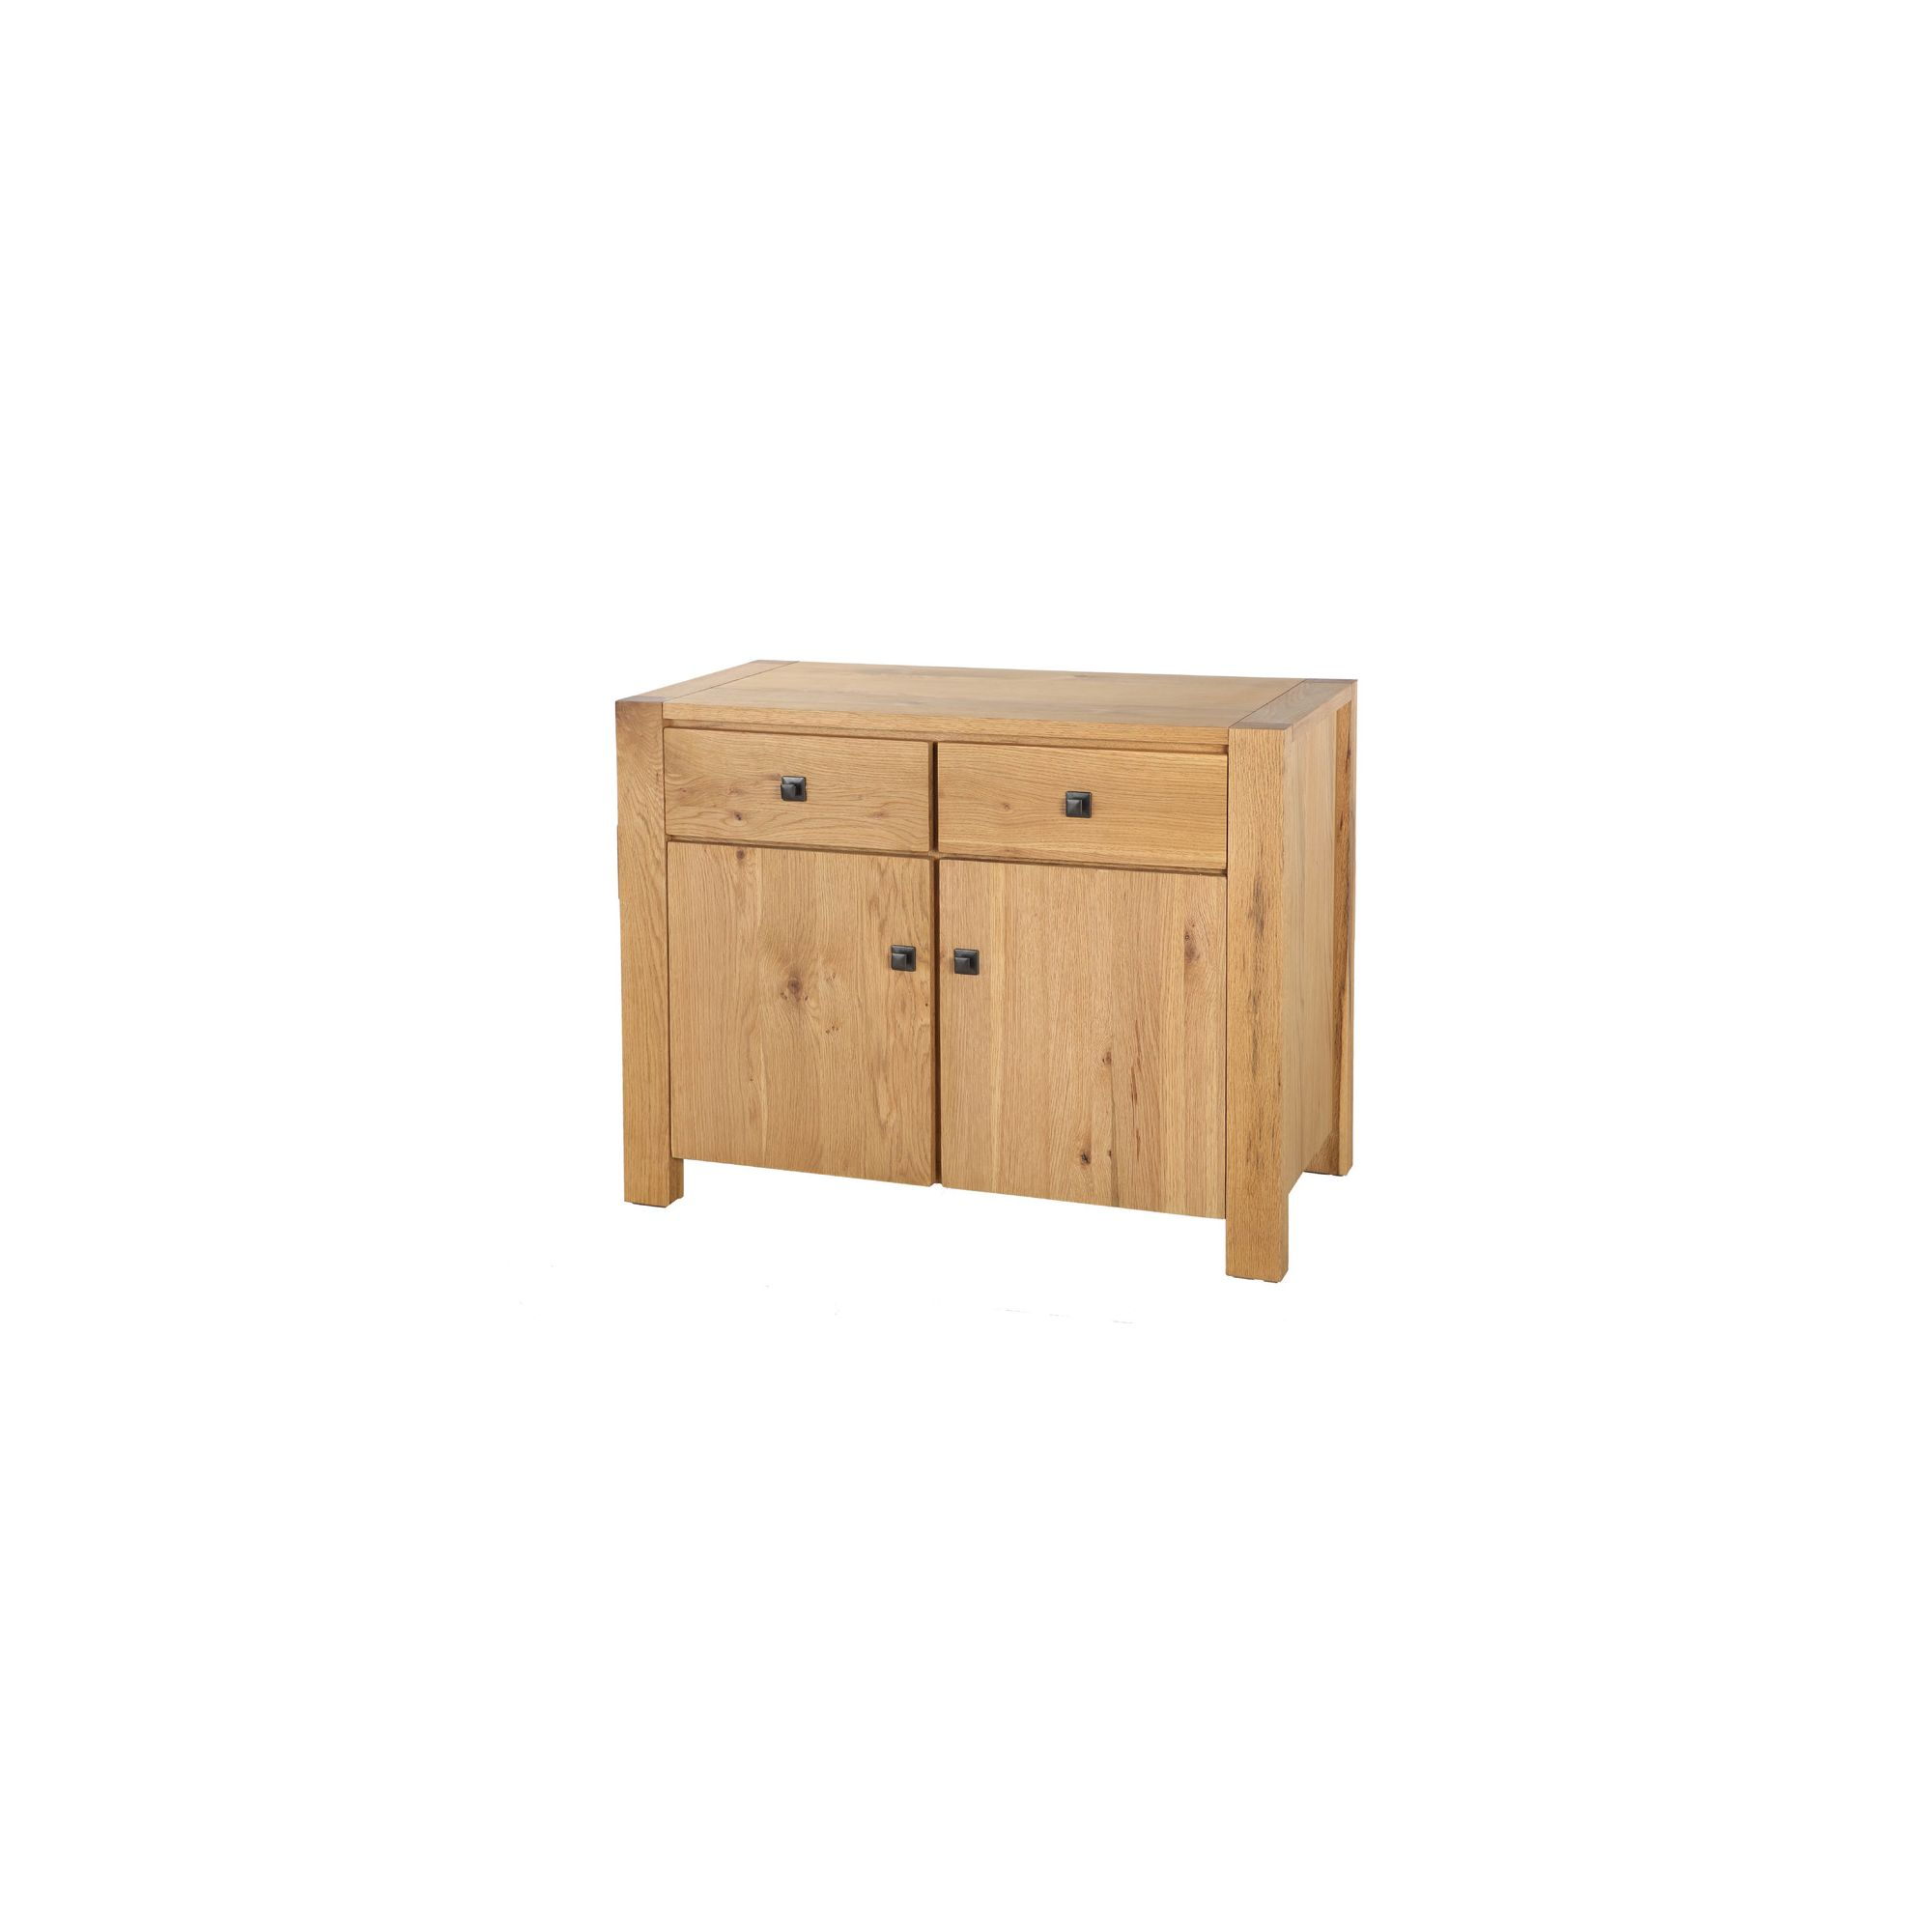 Oakinsen Clermont Small Sideboard at Tesco Direct